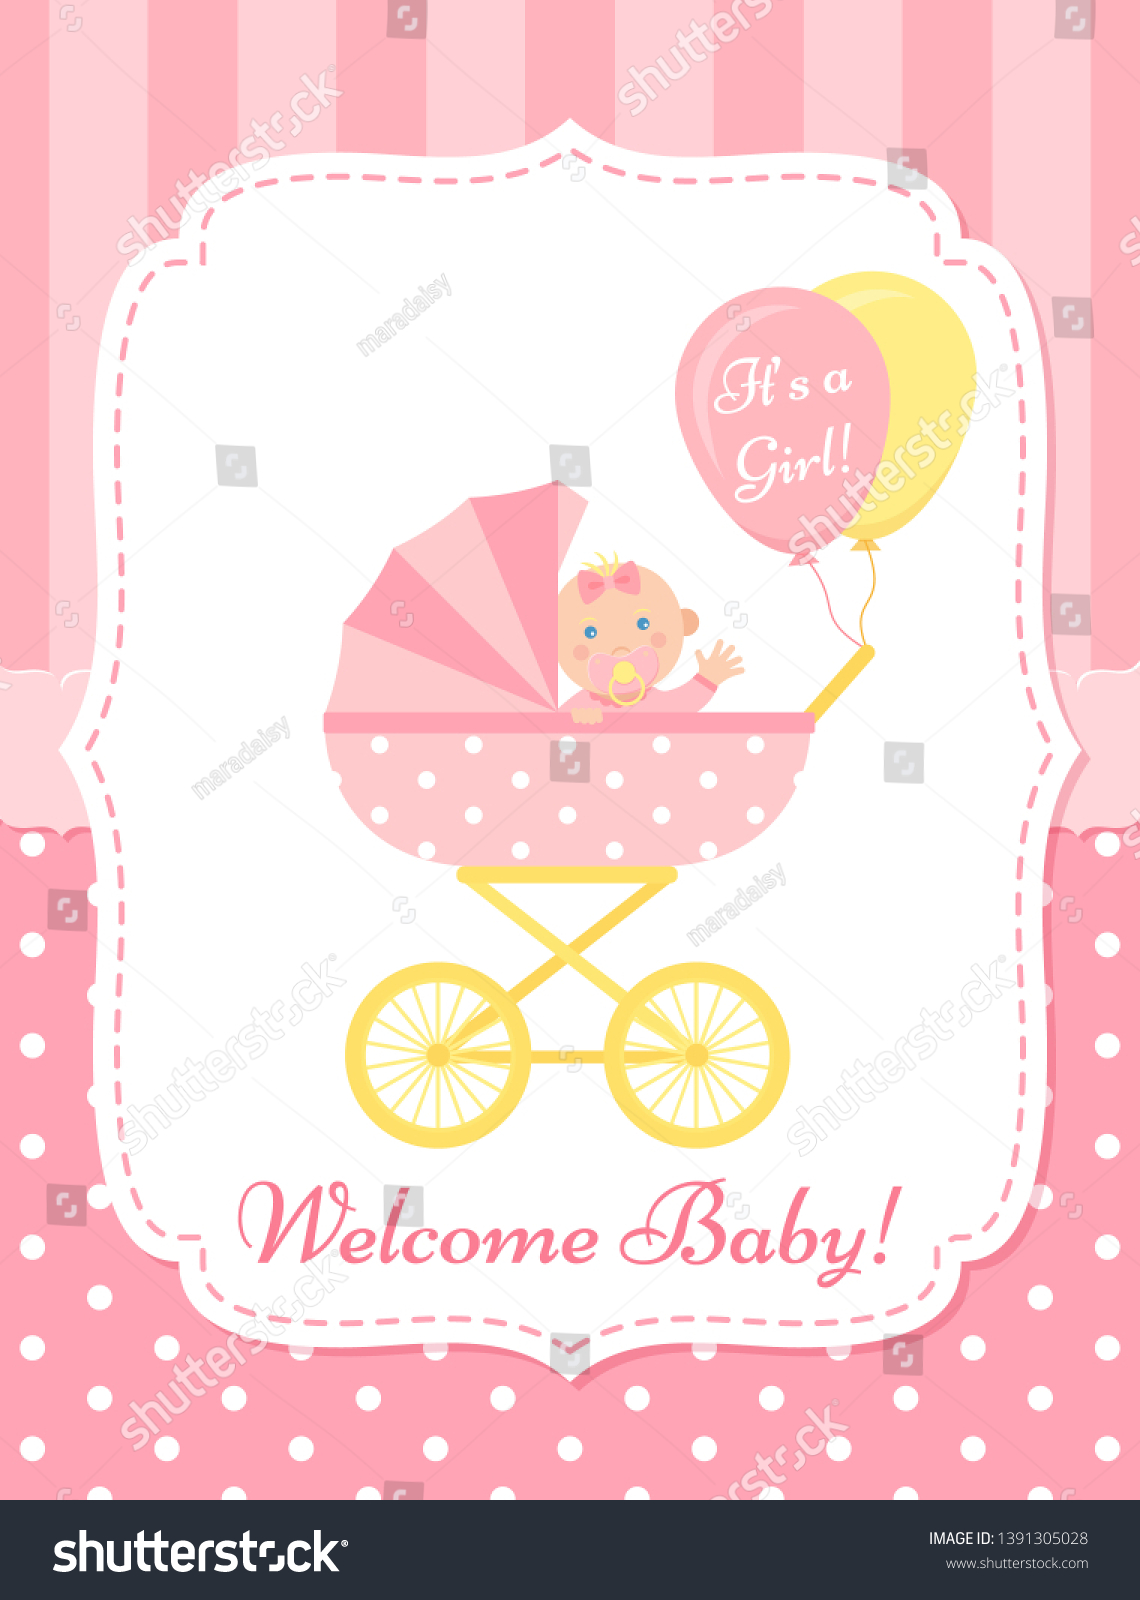 Baby Girl Card Vector Baby Shower Stock Vector Royalty Free 1391305028